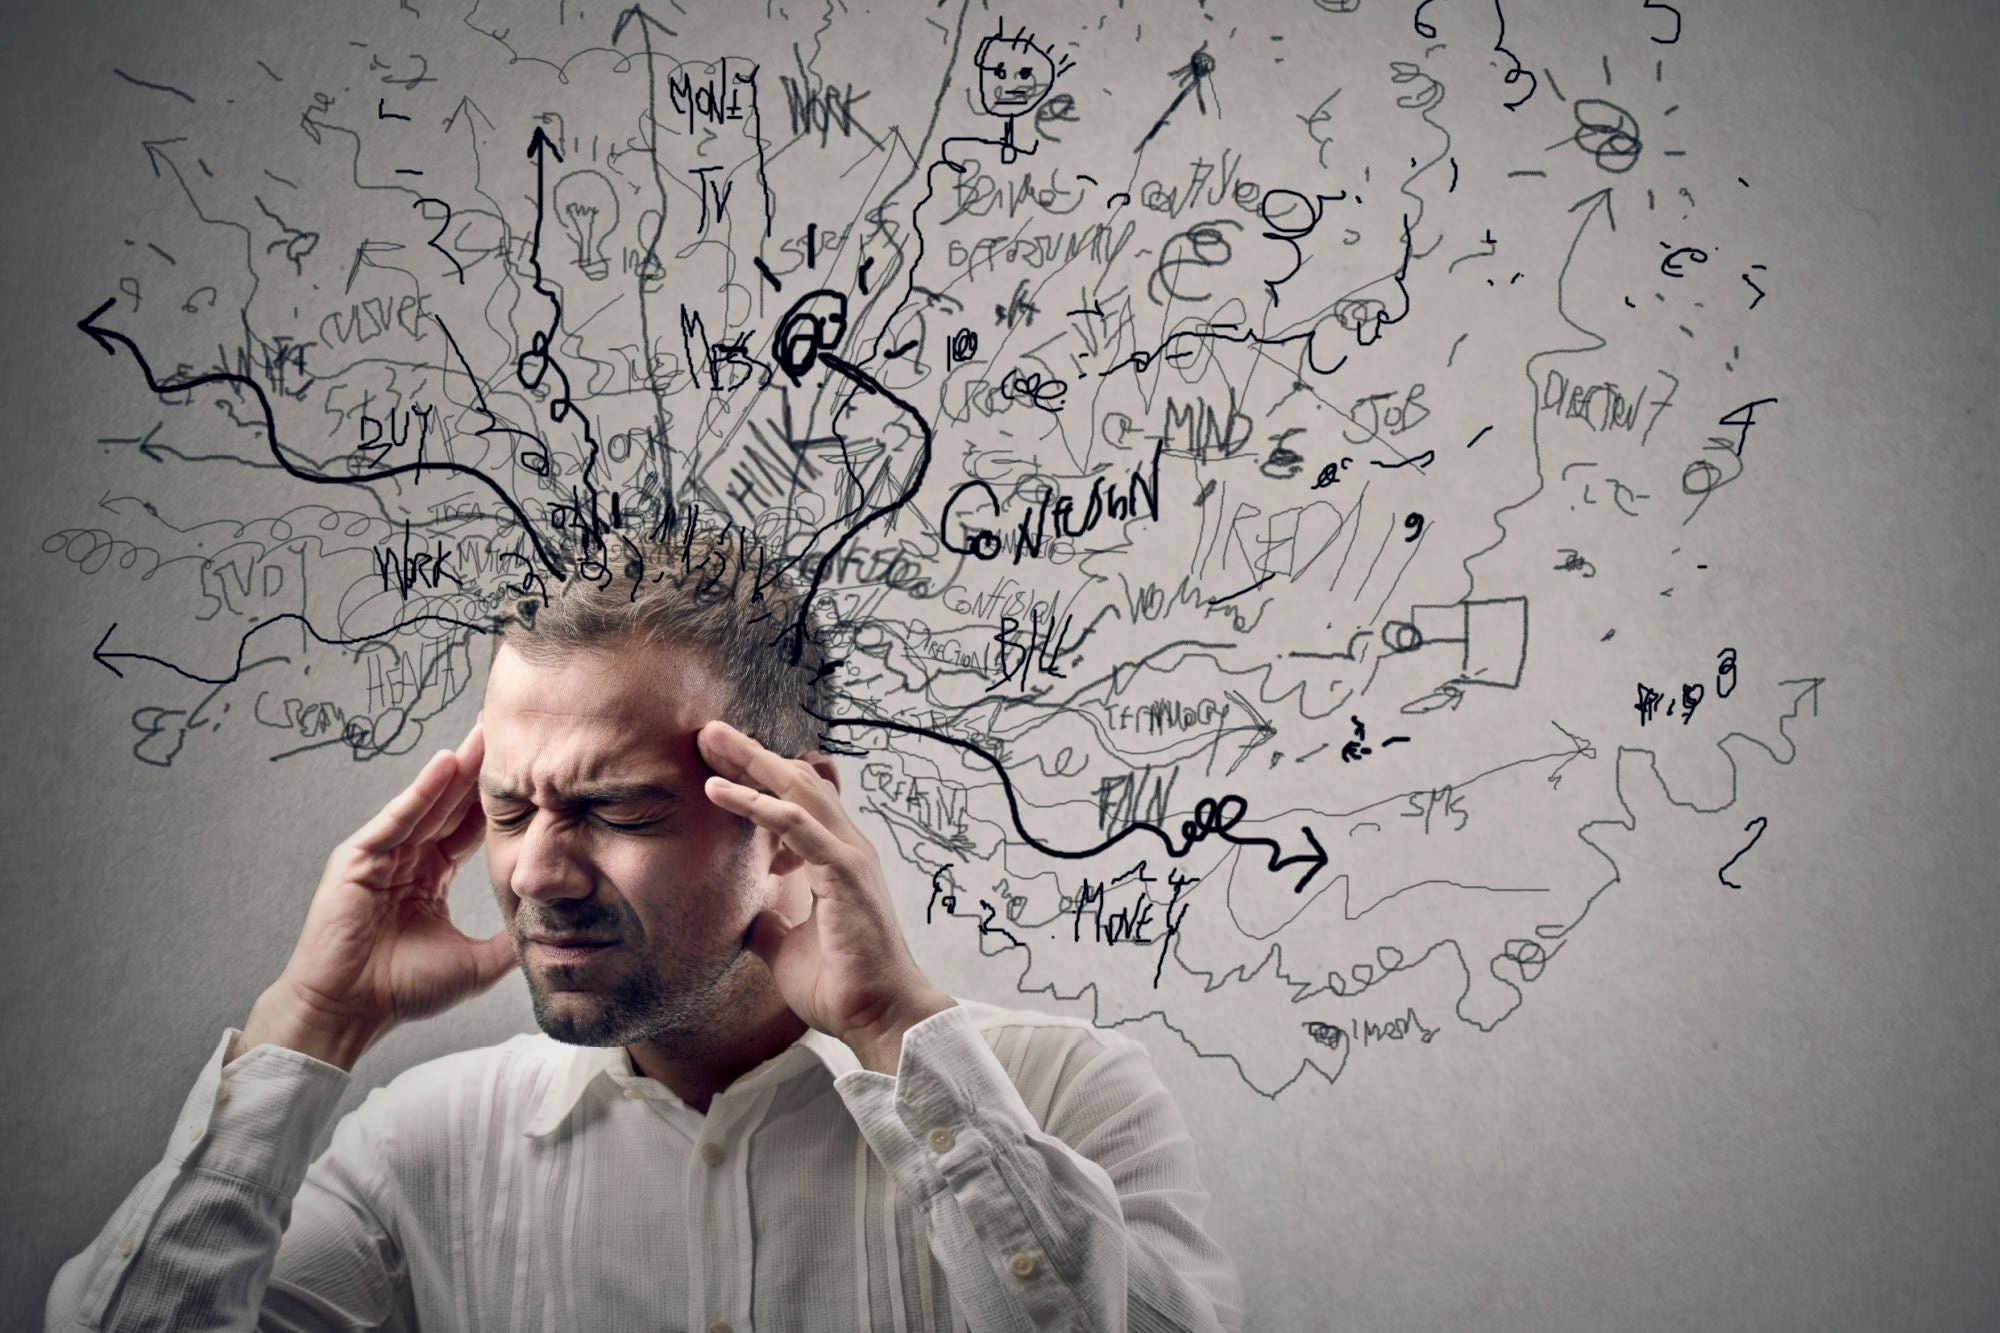 BIOLOGICAL AND PSYCHOLOGICAL STRESS AND DIFFERENCES BETWEEN THEM